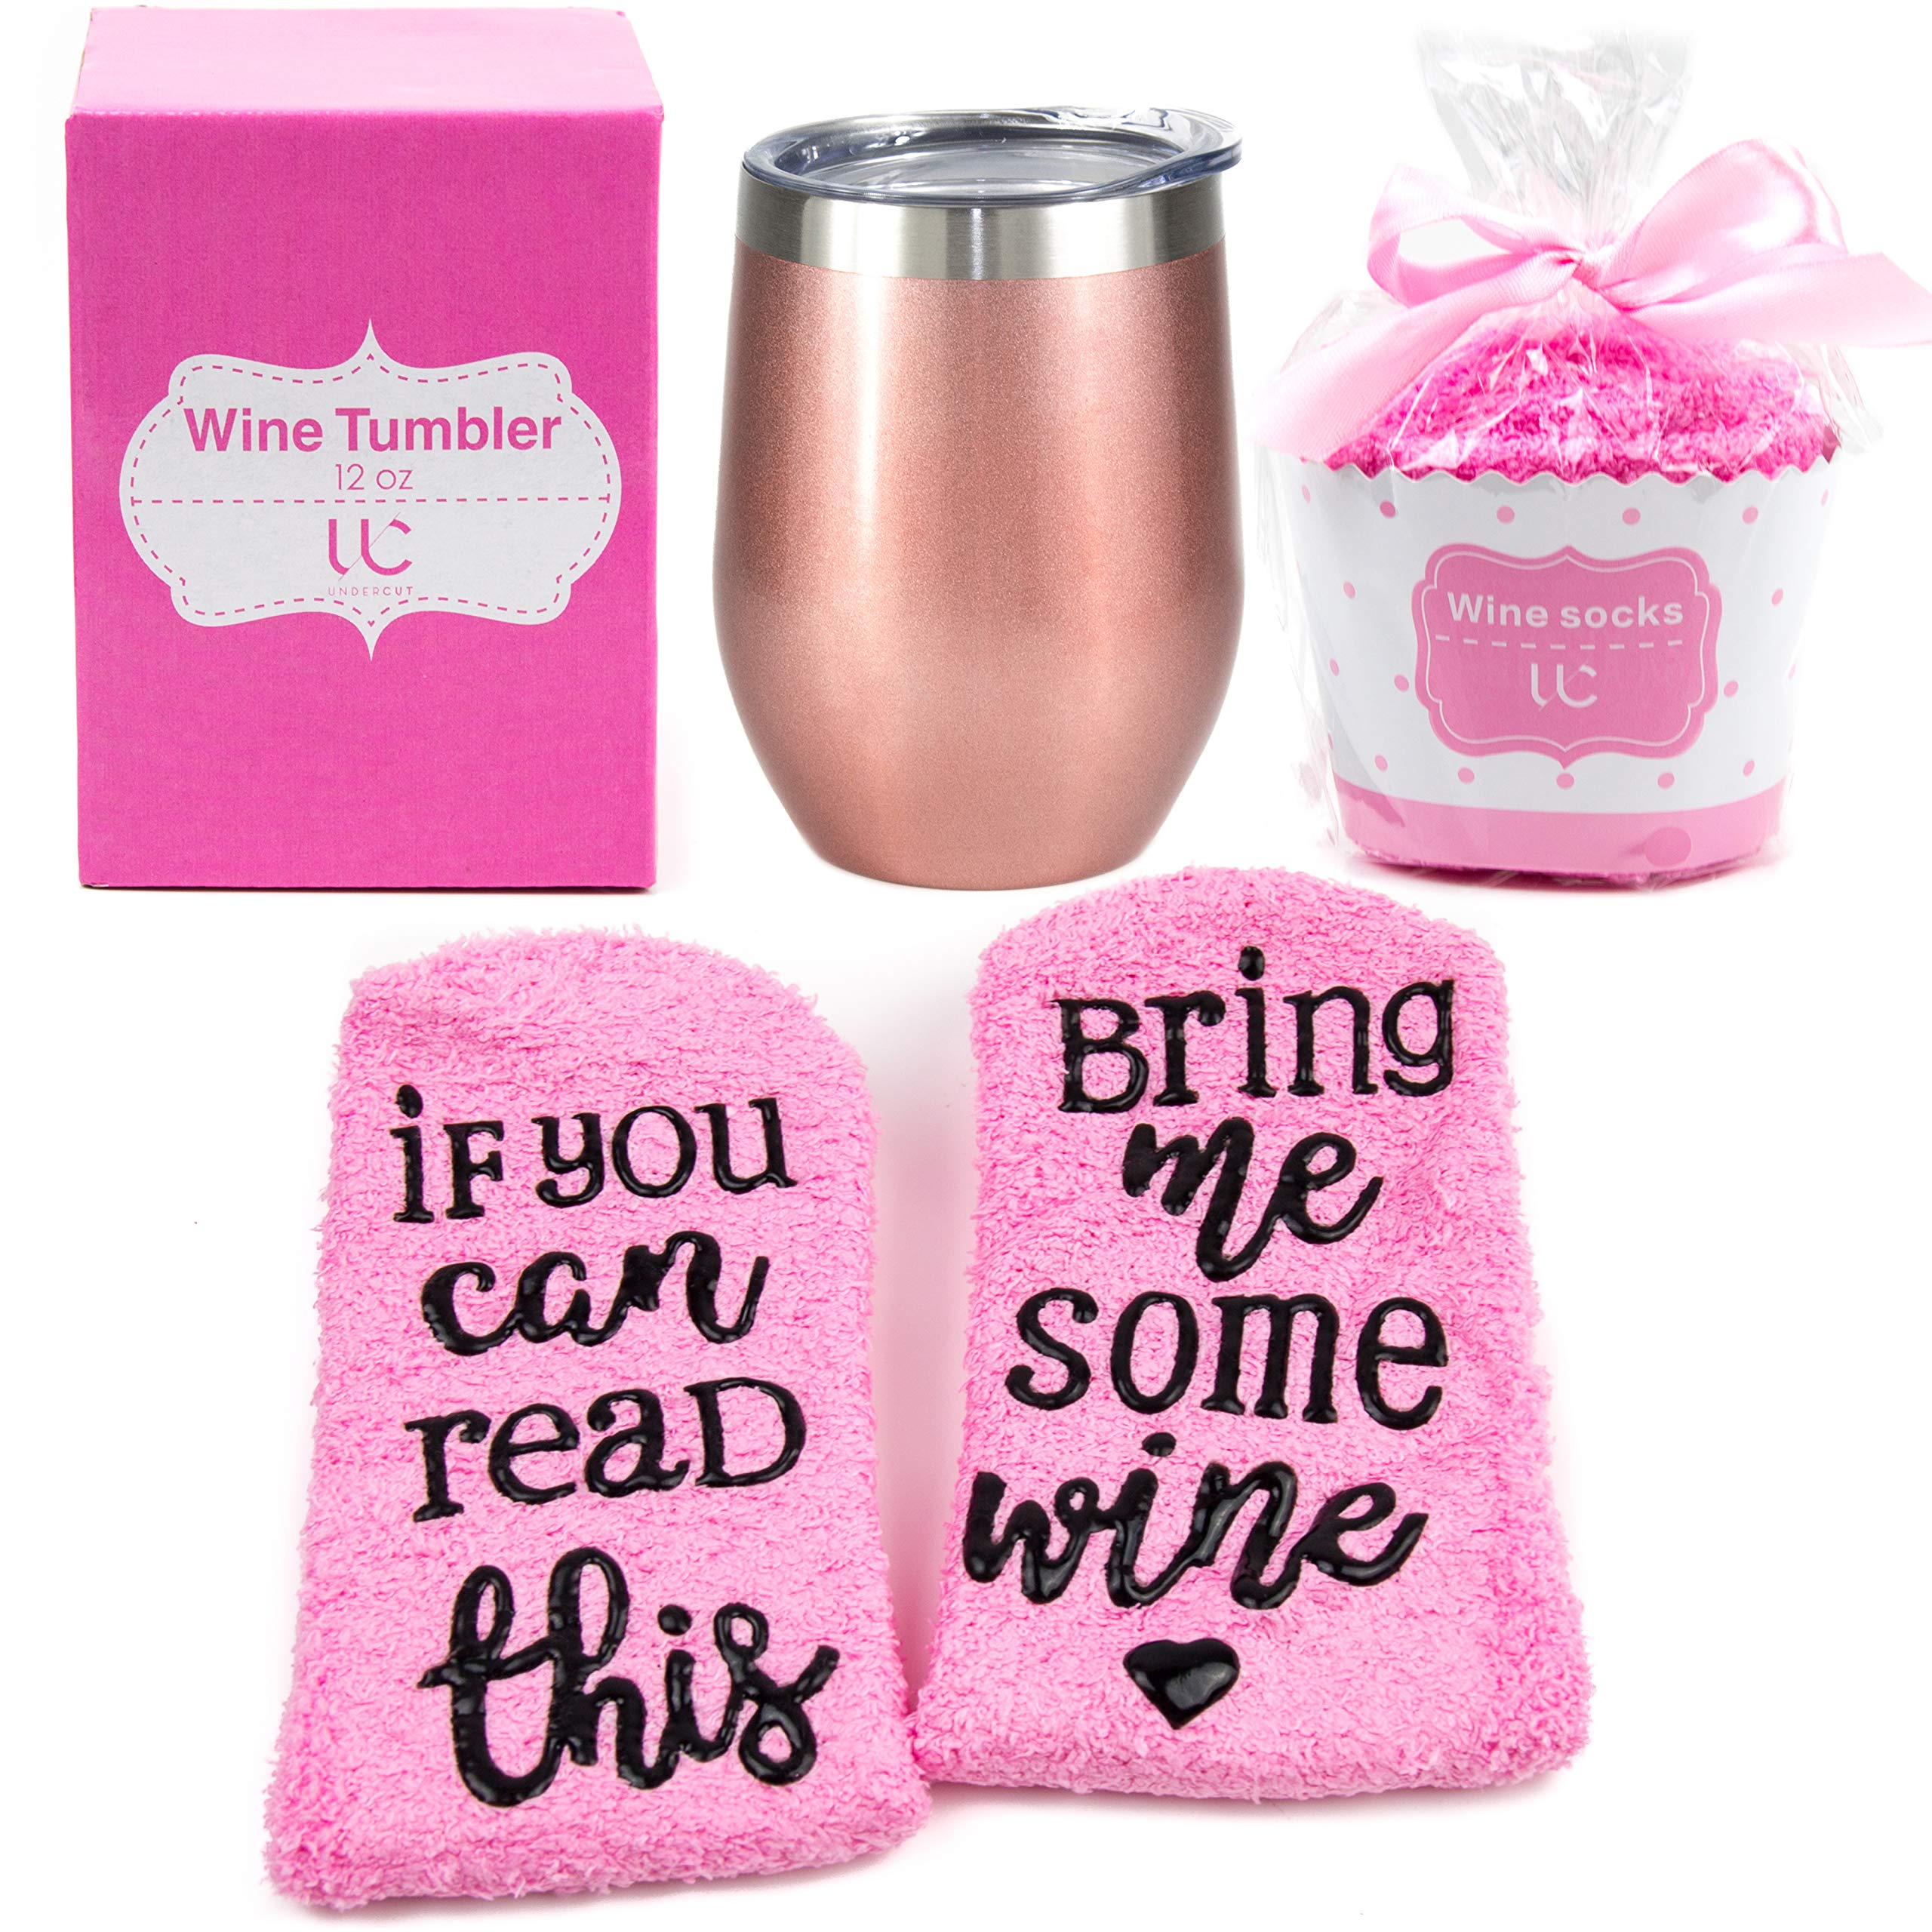 Stainless Steel 12 oz Wine Tumbler + Cupcake Wine Socks Gift Set | Double Insulated Stemless Wine Tumbler with Lid, Rose Gold | Includes Funny Socks''If You Can Read This, Bring Me Some Wine'' by Undercut Innovations